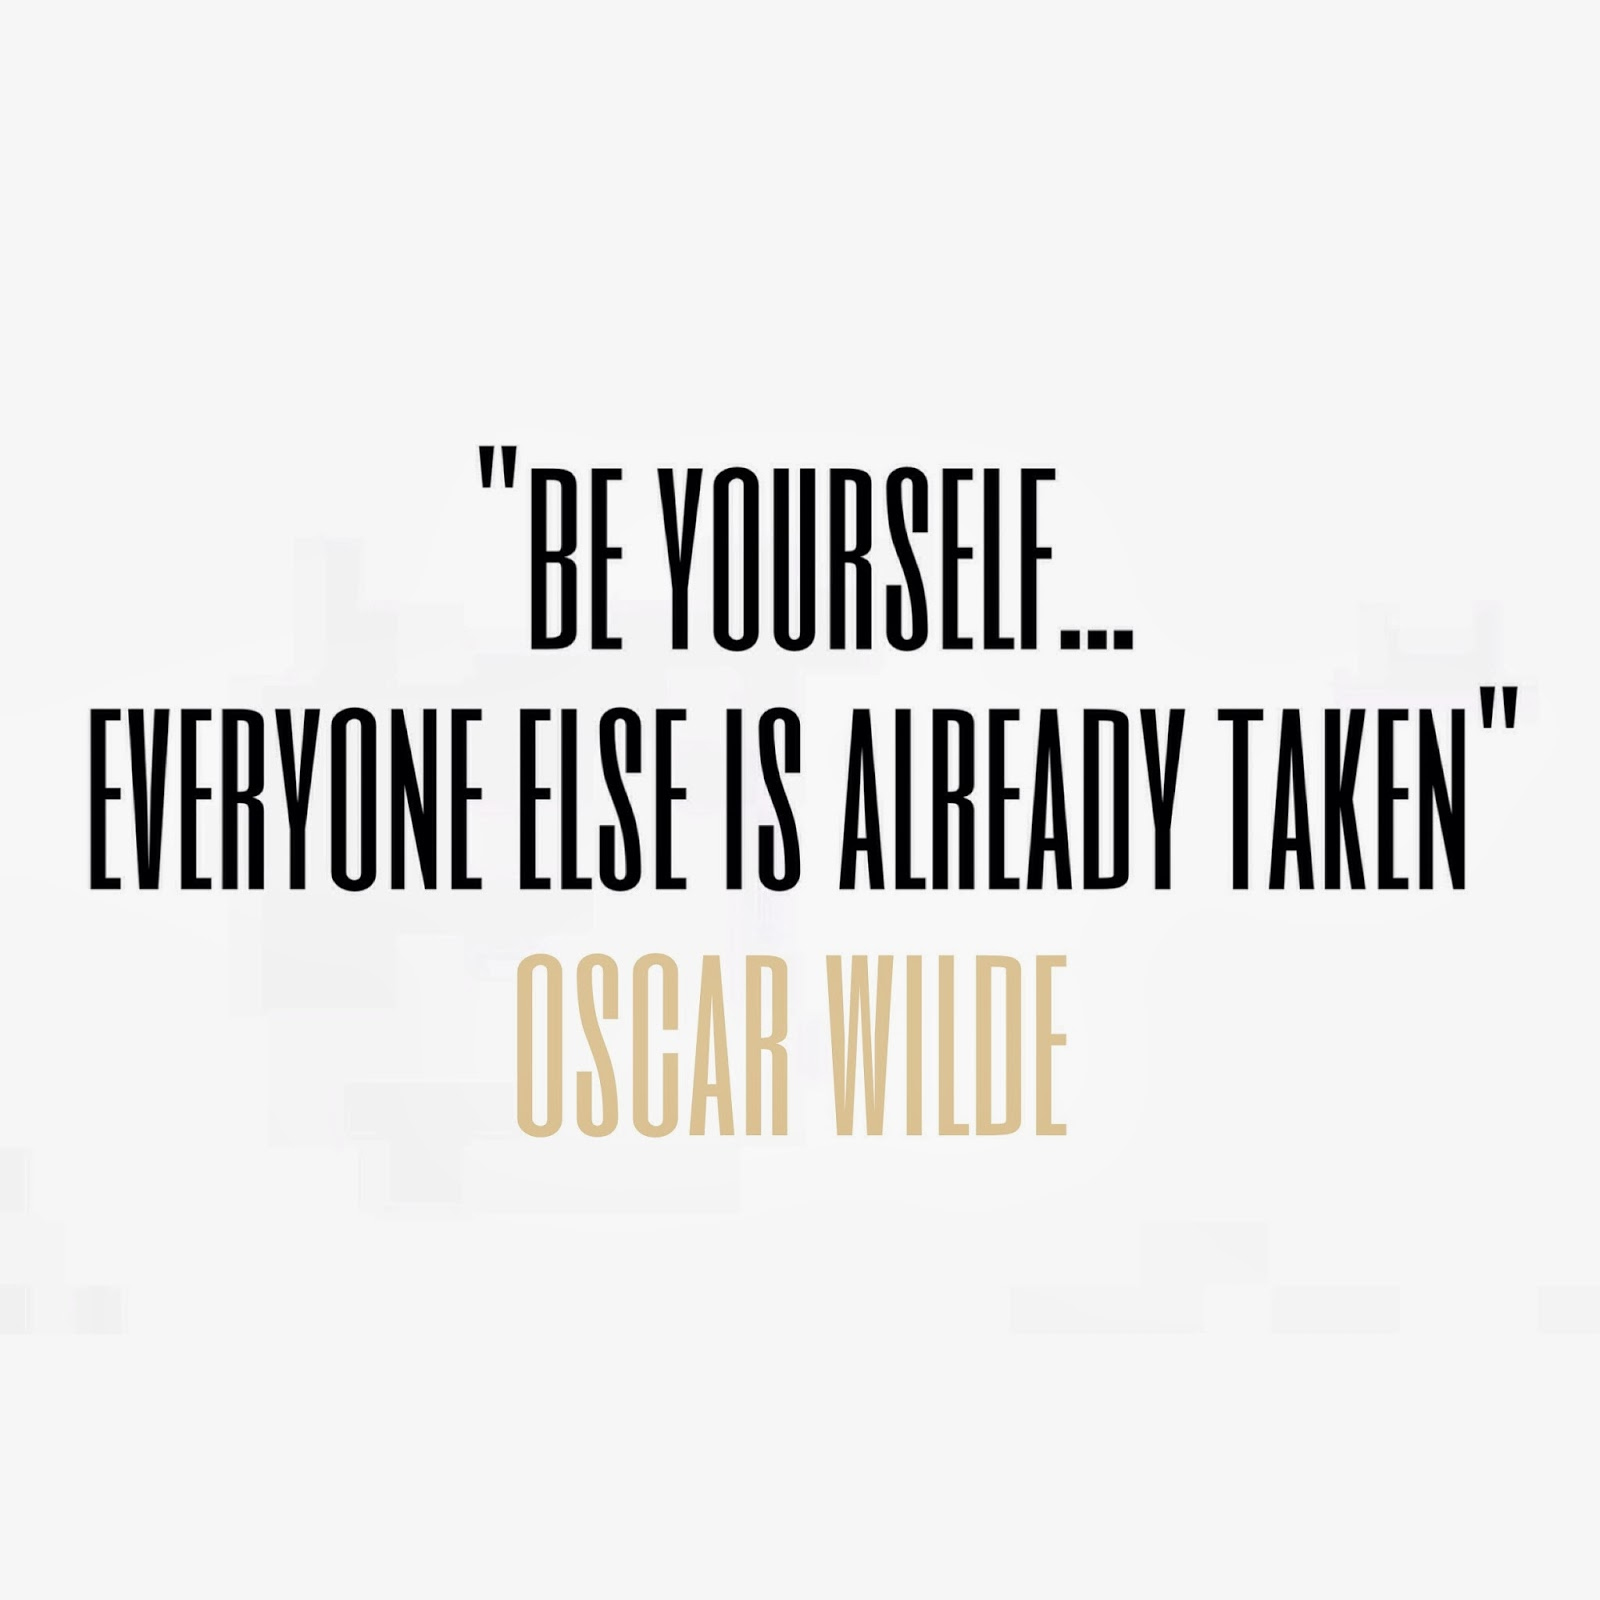 Just Be Yourself Everyone Else Is Taken But i ll just put them upJust Be Yourself Everyone Else Is Taken